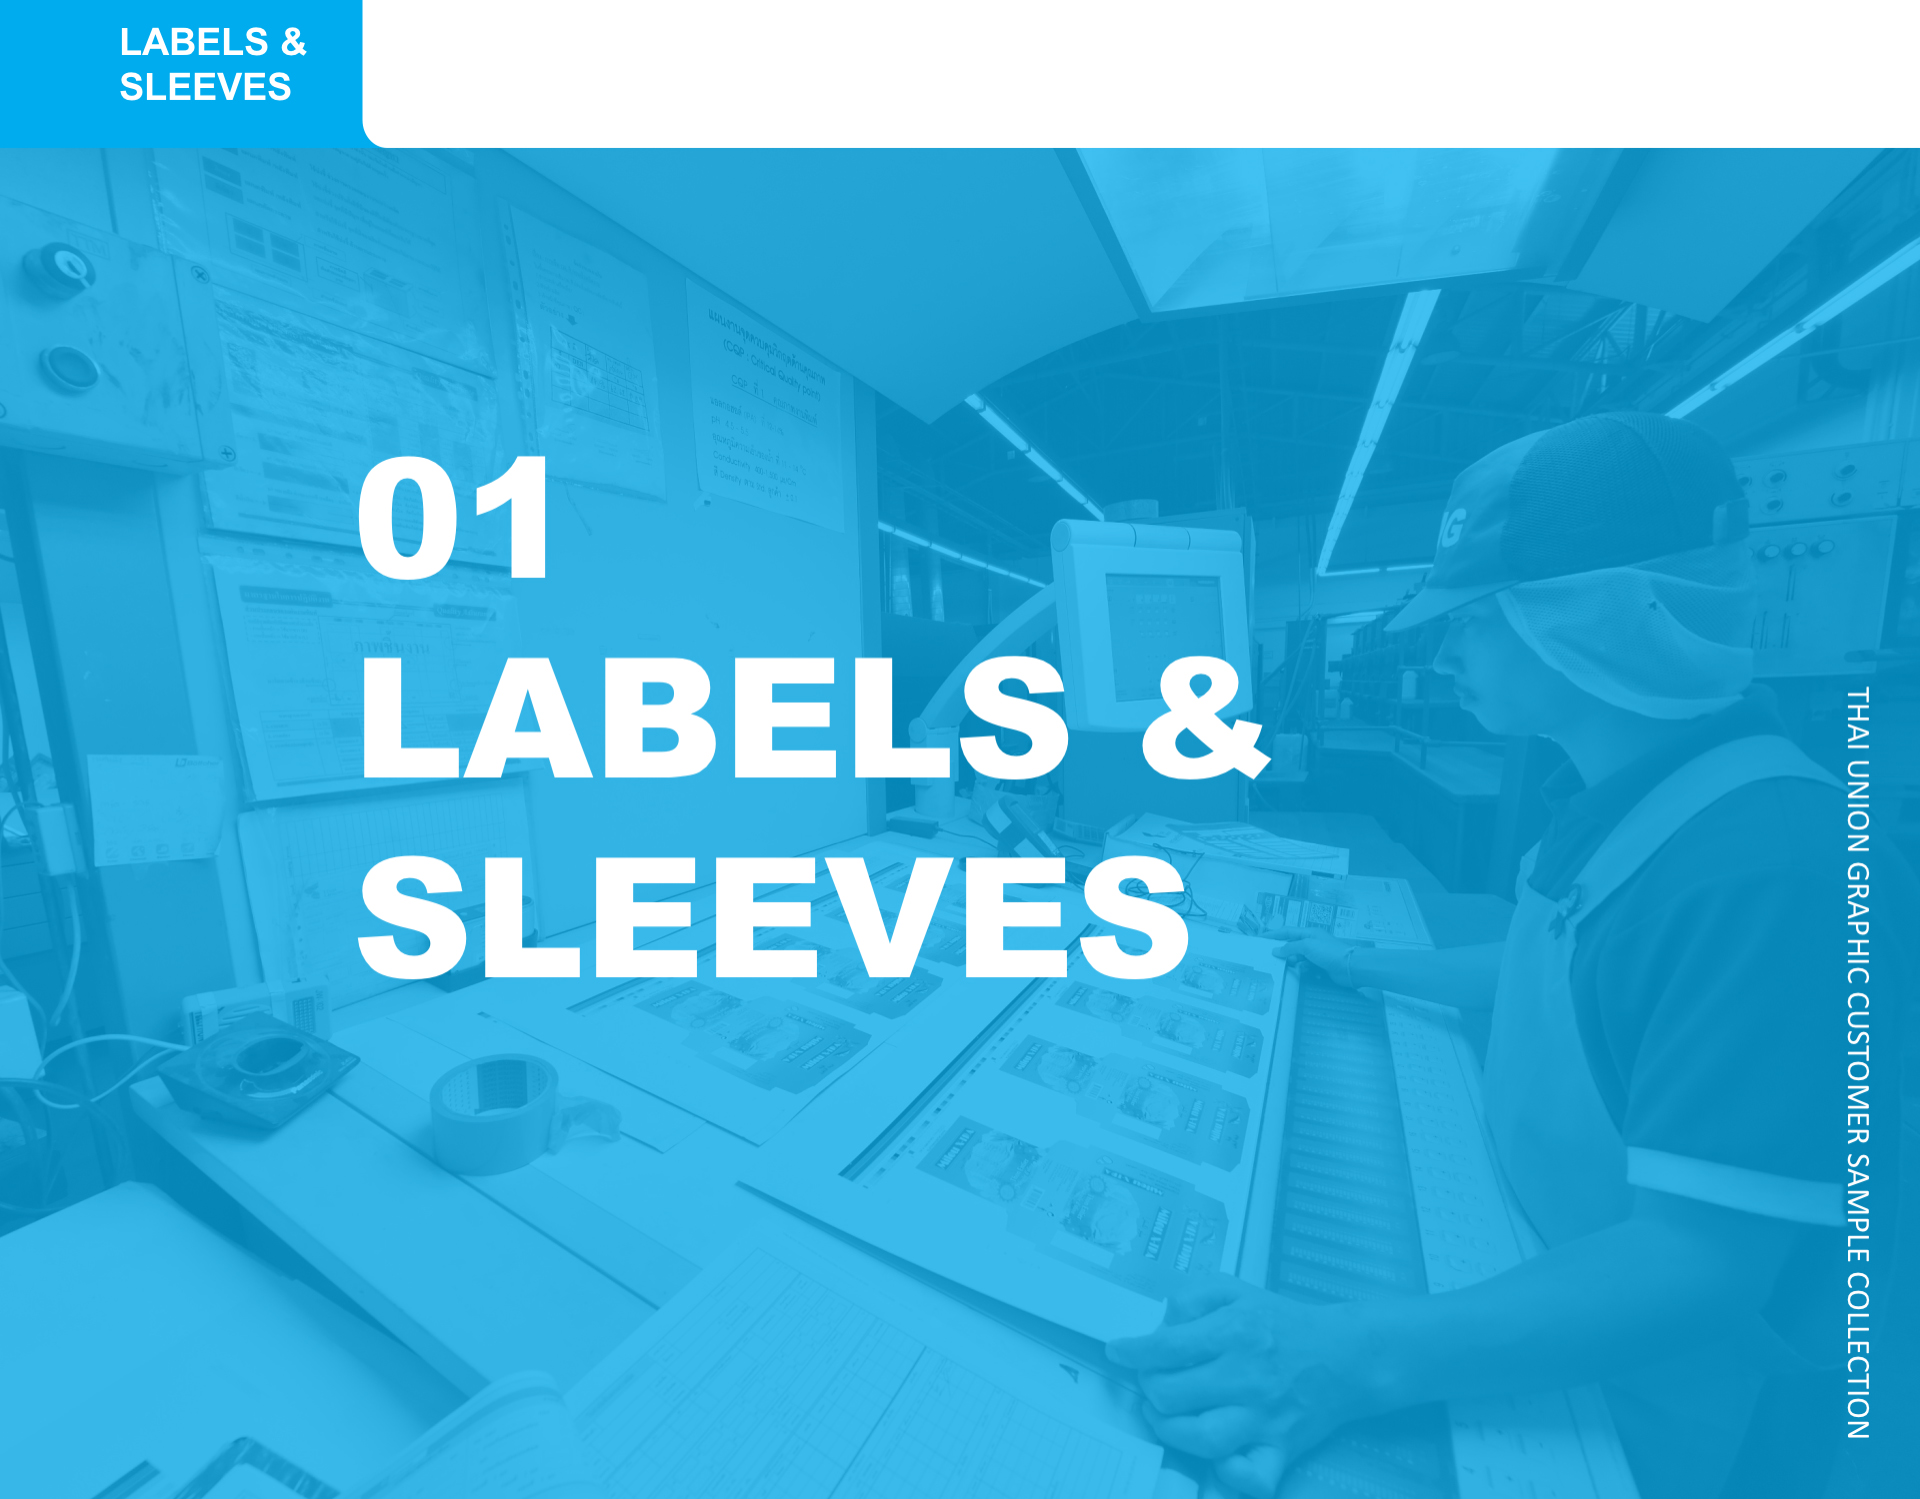 LABELS&SLEEVES